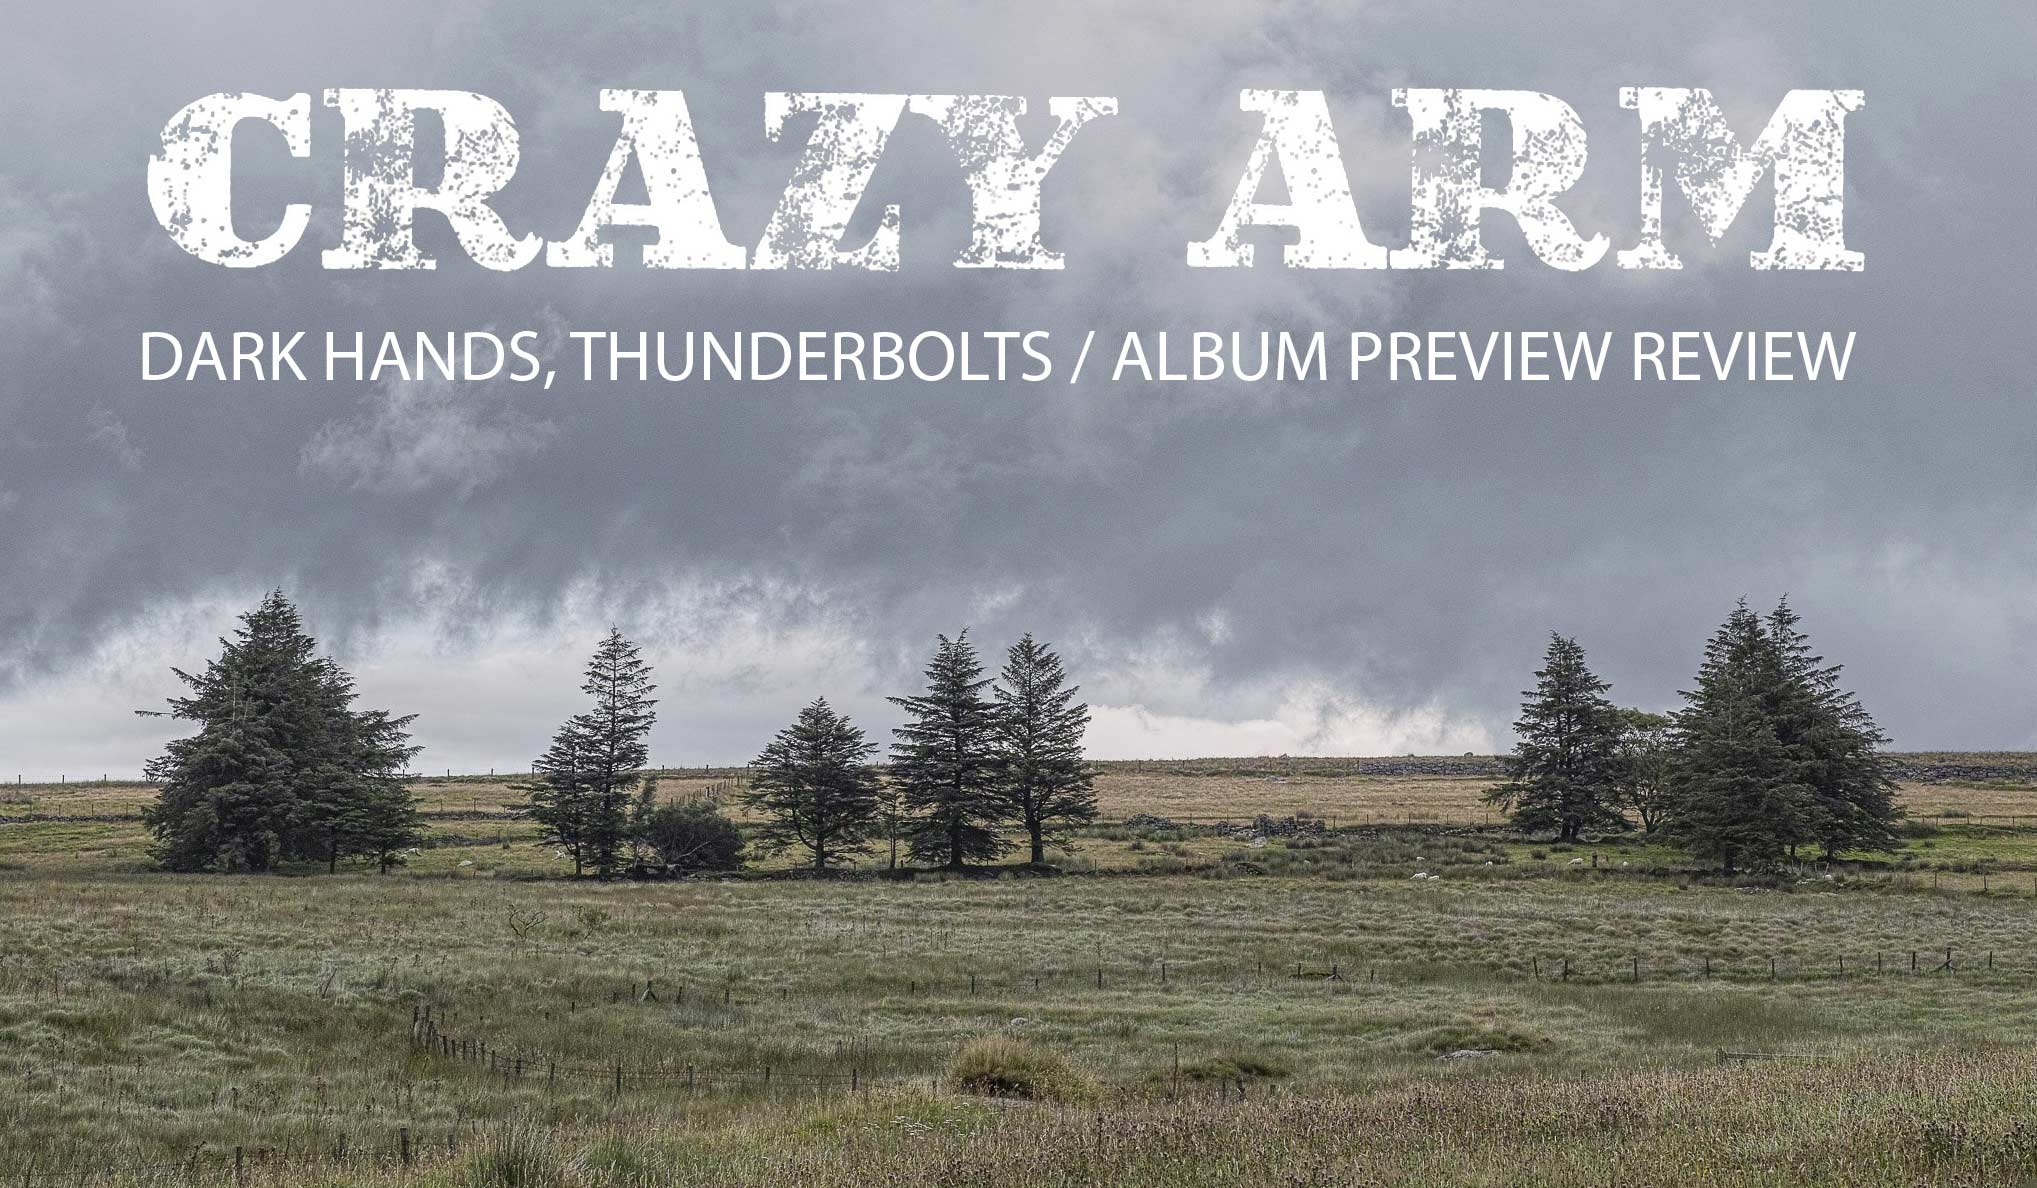 Crazy Arm streamed a debut of their fourth LP 'Dark Hands, Thunderbolts' on 25th MAY 2020